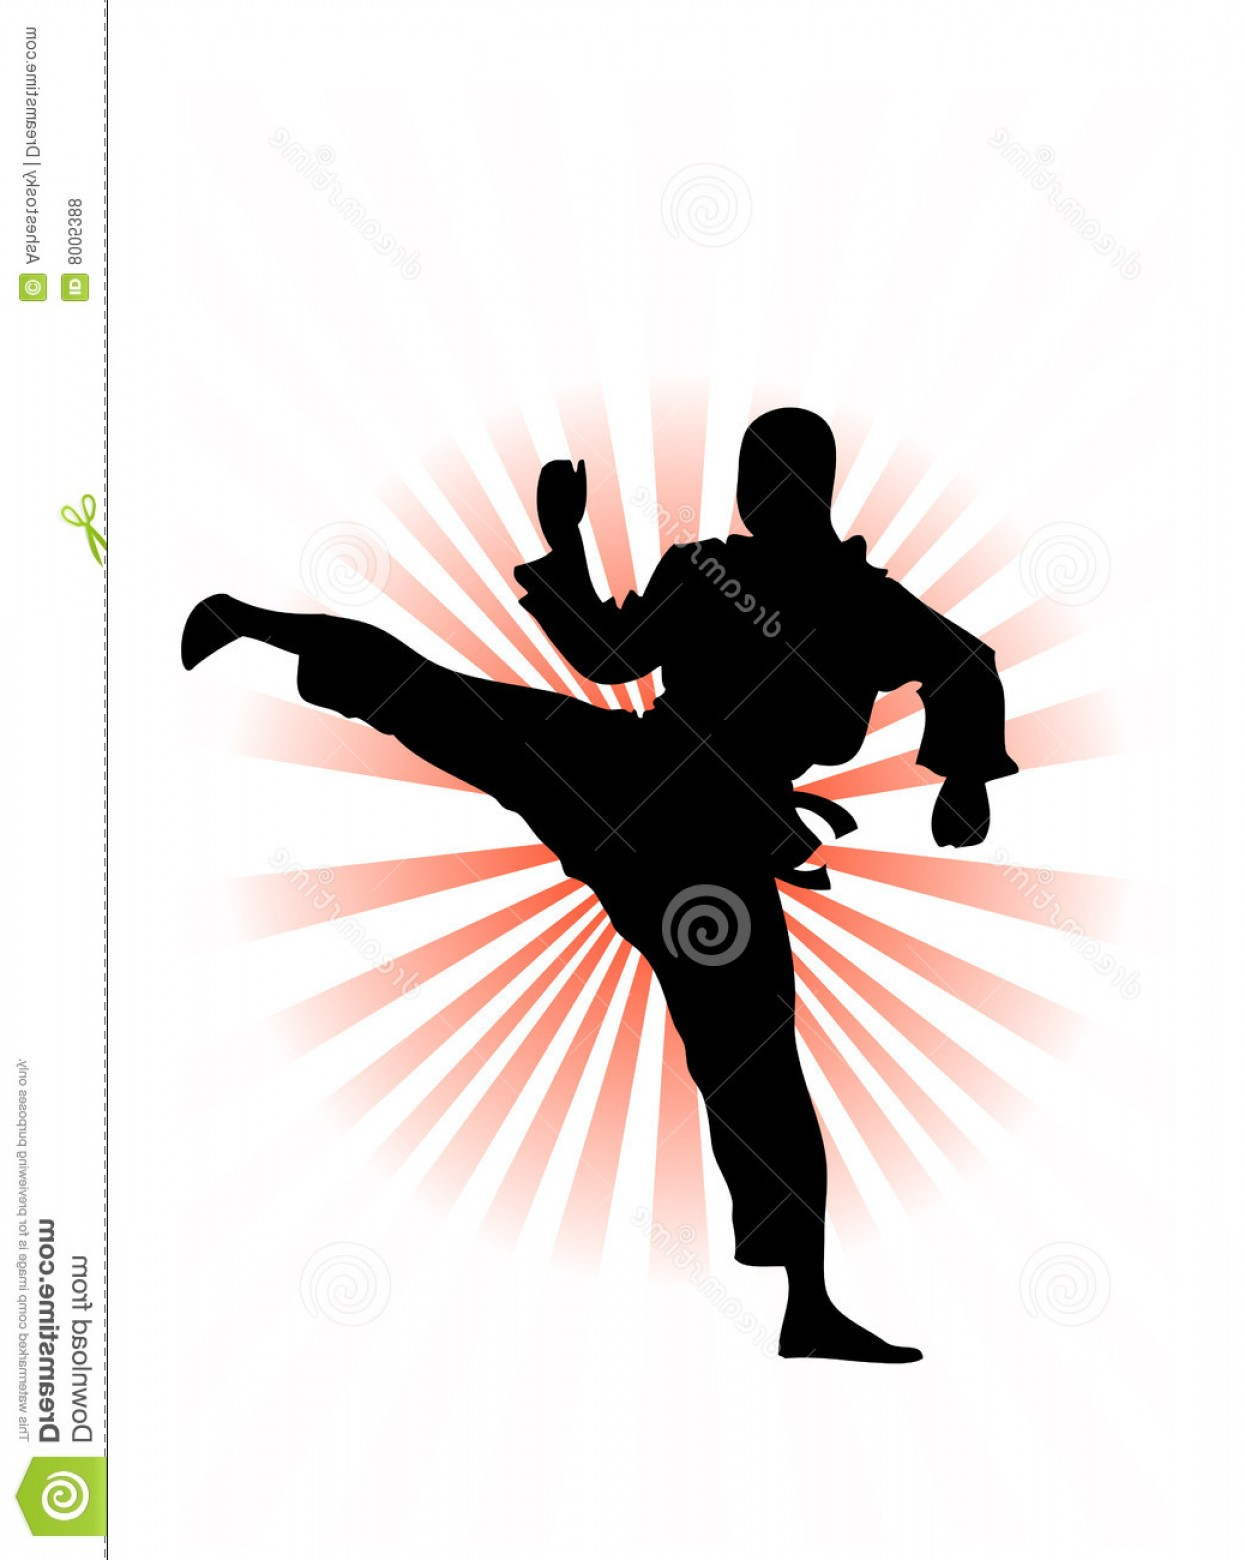 Karate Vector: Royalty Free Stock Photos Korean Karate Fighter Vector Image